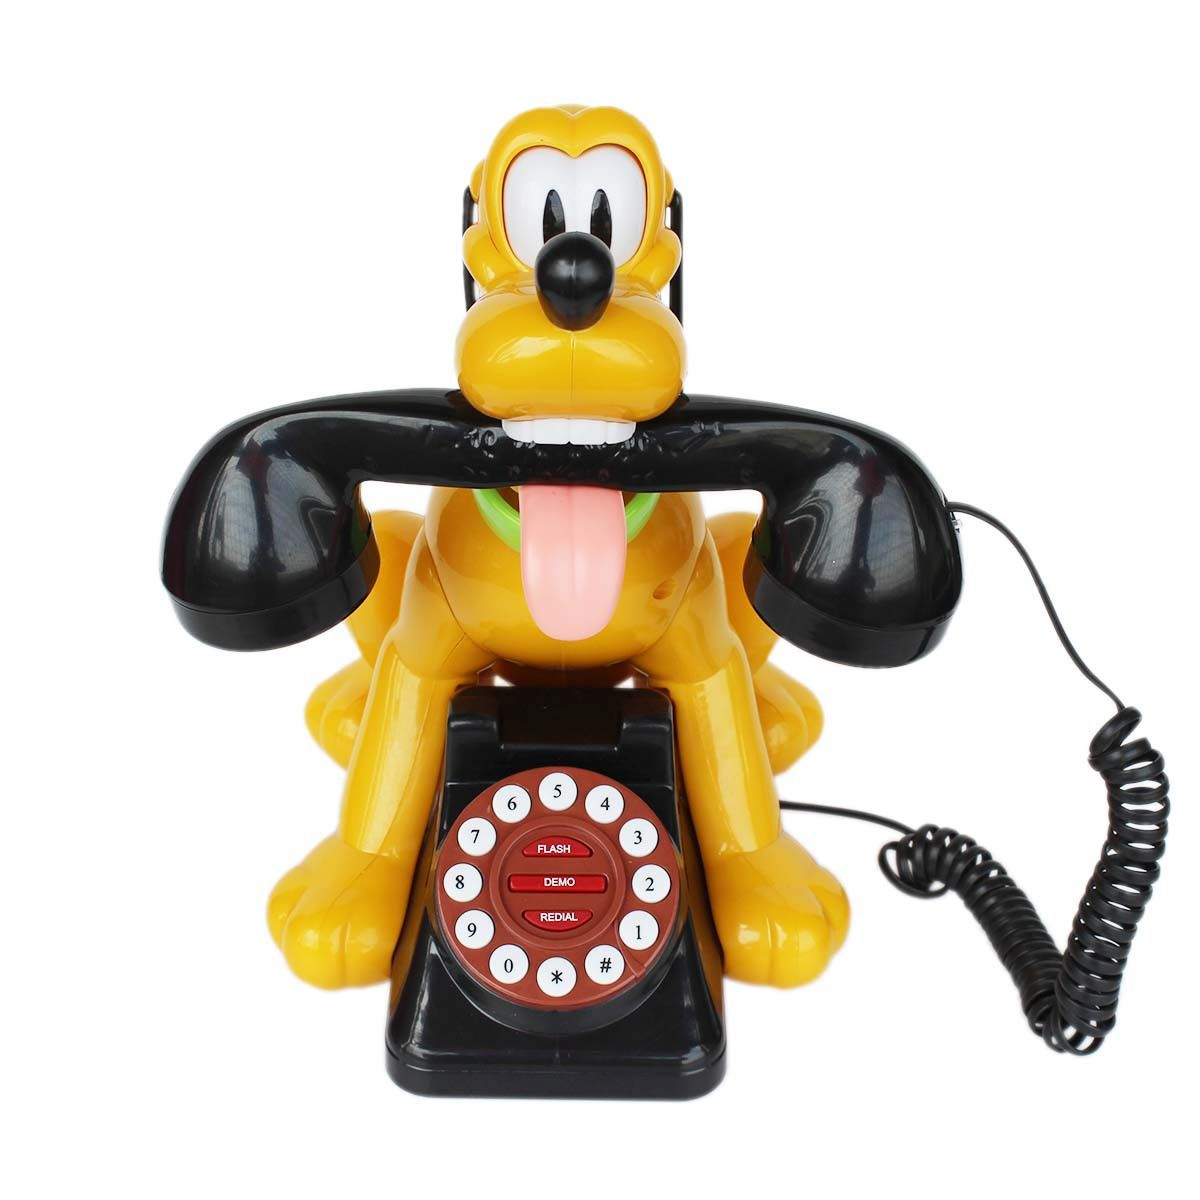 hight resolution of animal dog shaped wired telephone landline phone 1m212 yellow landlinephone cartoontelephone homedecor fancyphones telephone